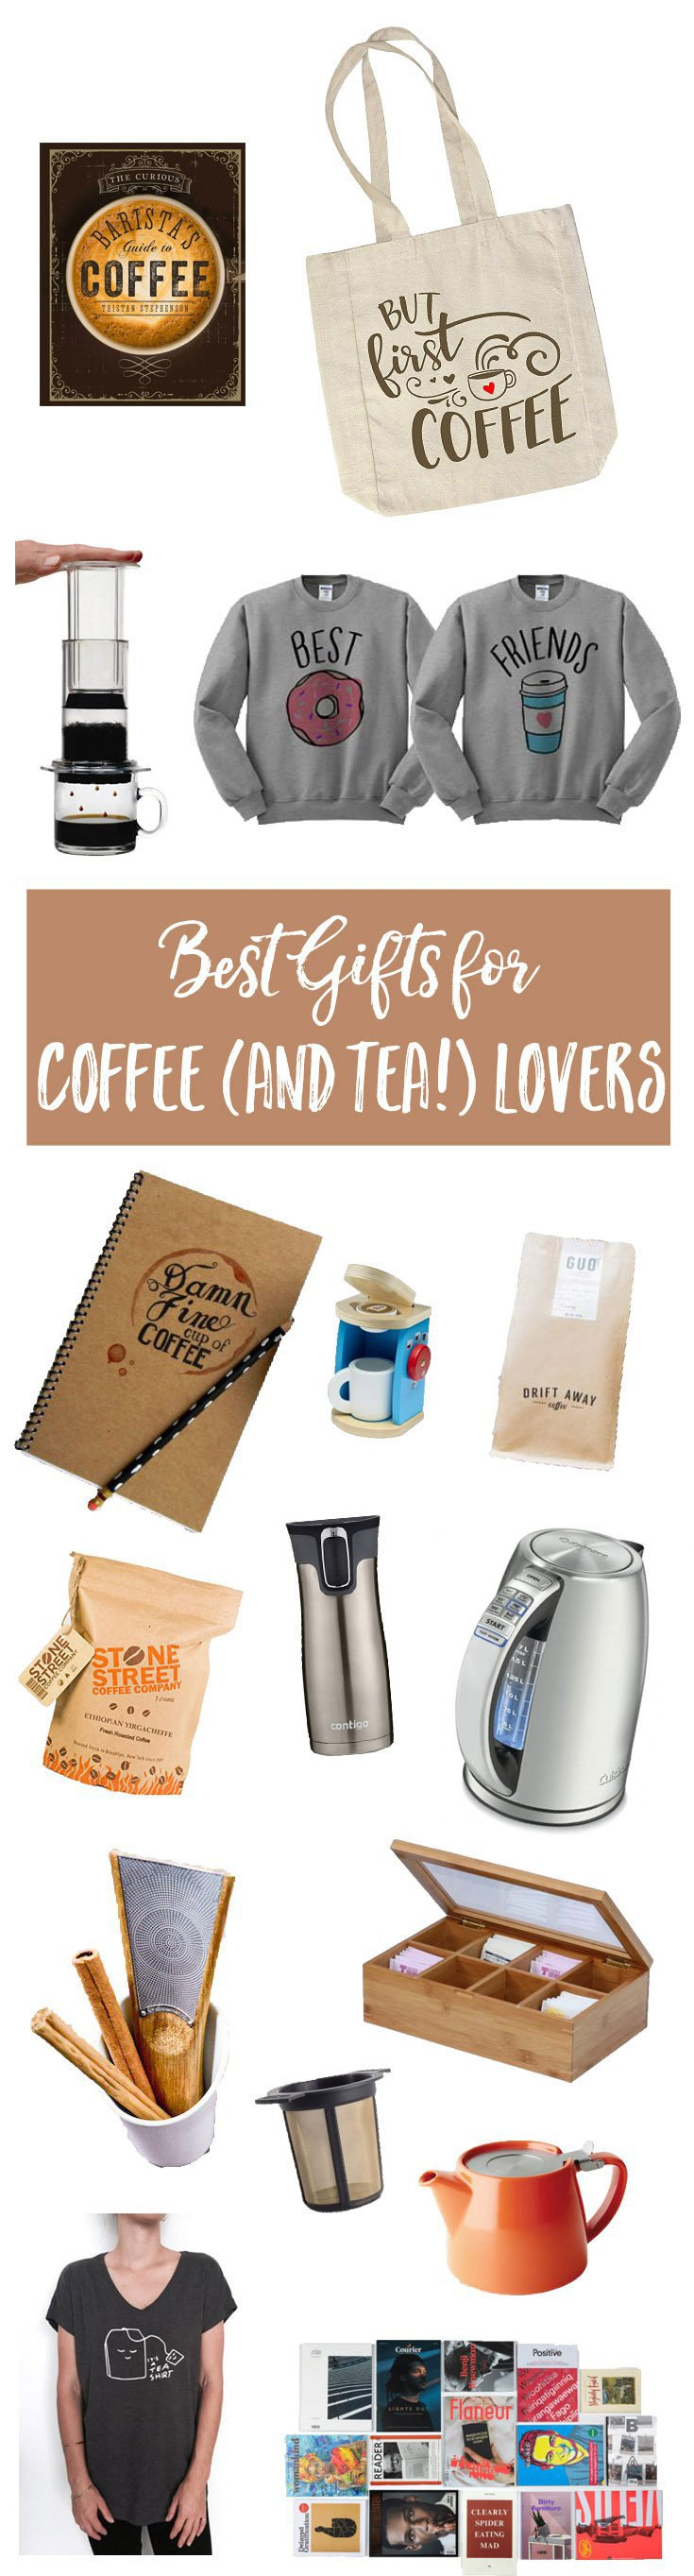 Best Gifts for Coffee (and Tea) Lovers